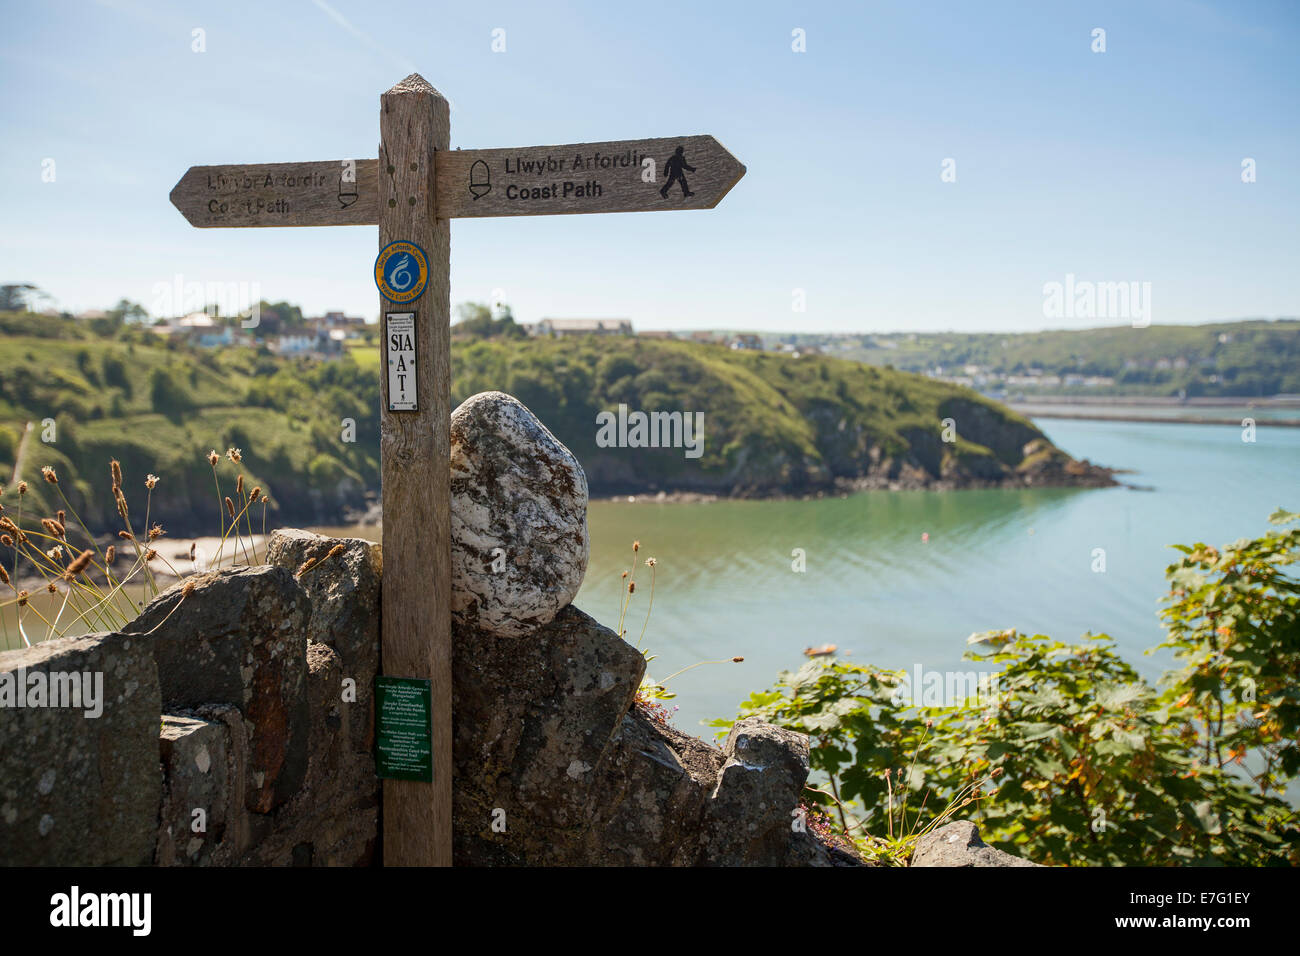 Wooden signpost showing cycling paths in Pembrokeshire, Wales - Stock Image